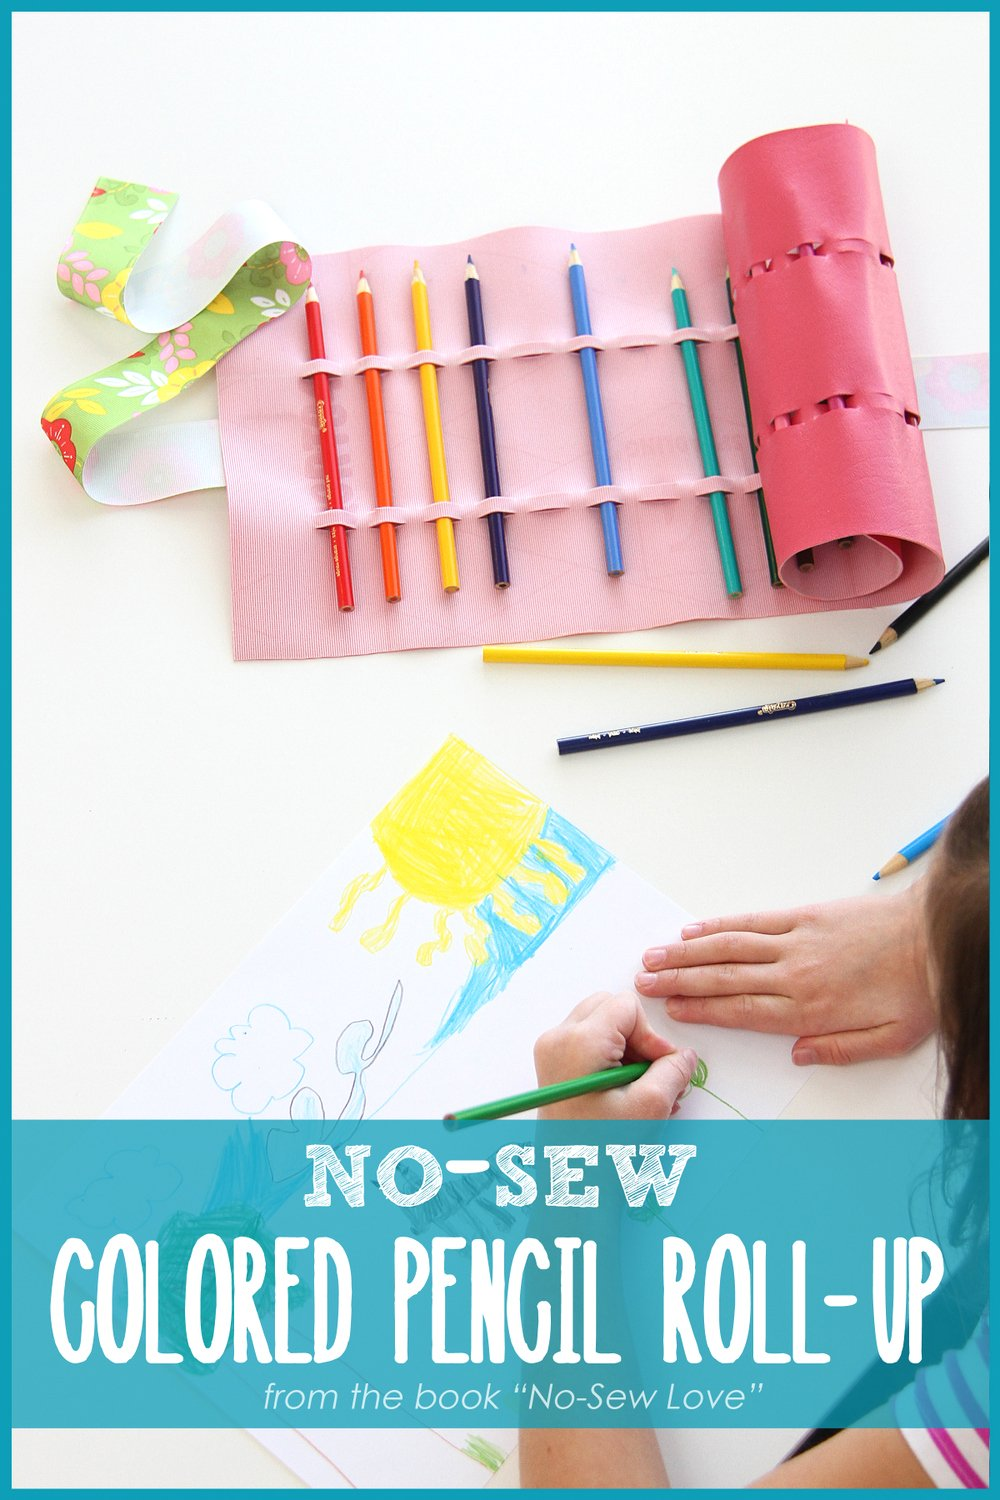 NO-SEW Colored Pencil Roll-Up (or crayons, paintbrushes, etc.)…from the book 'No-Sew Love'